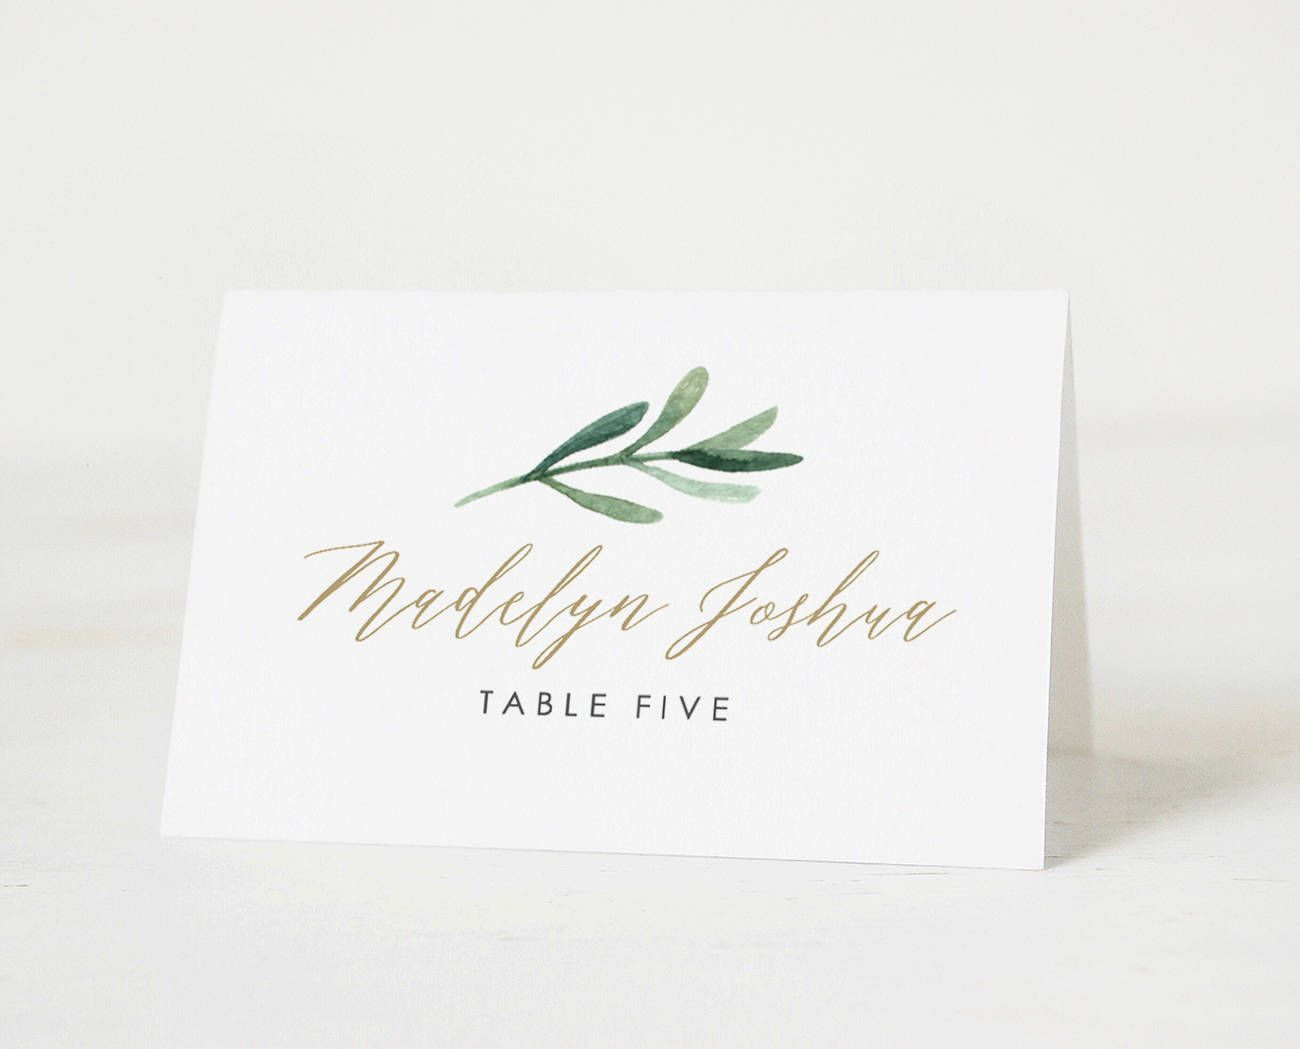 001 Unique Name Place Card Template Idea  Word Free MicrosoftFull